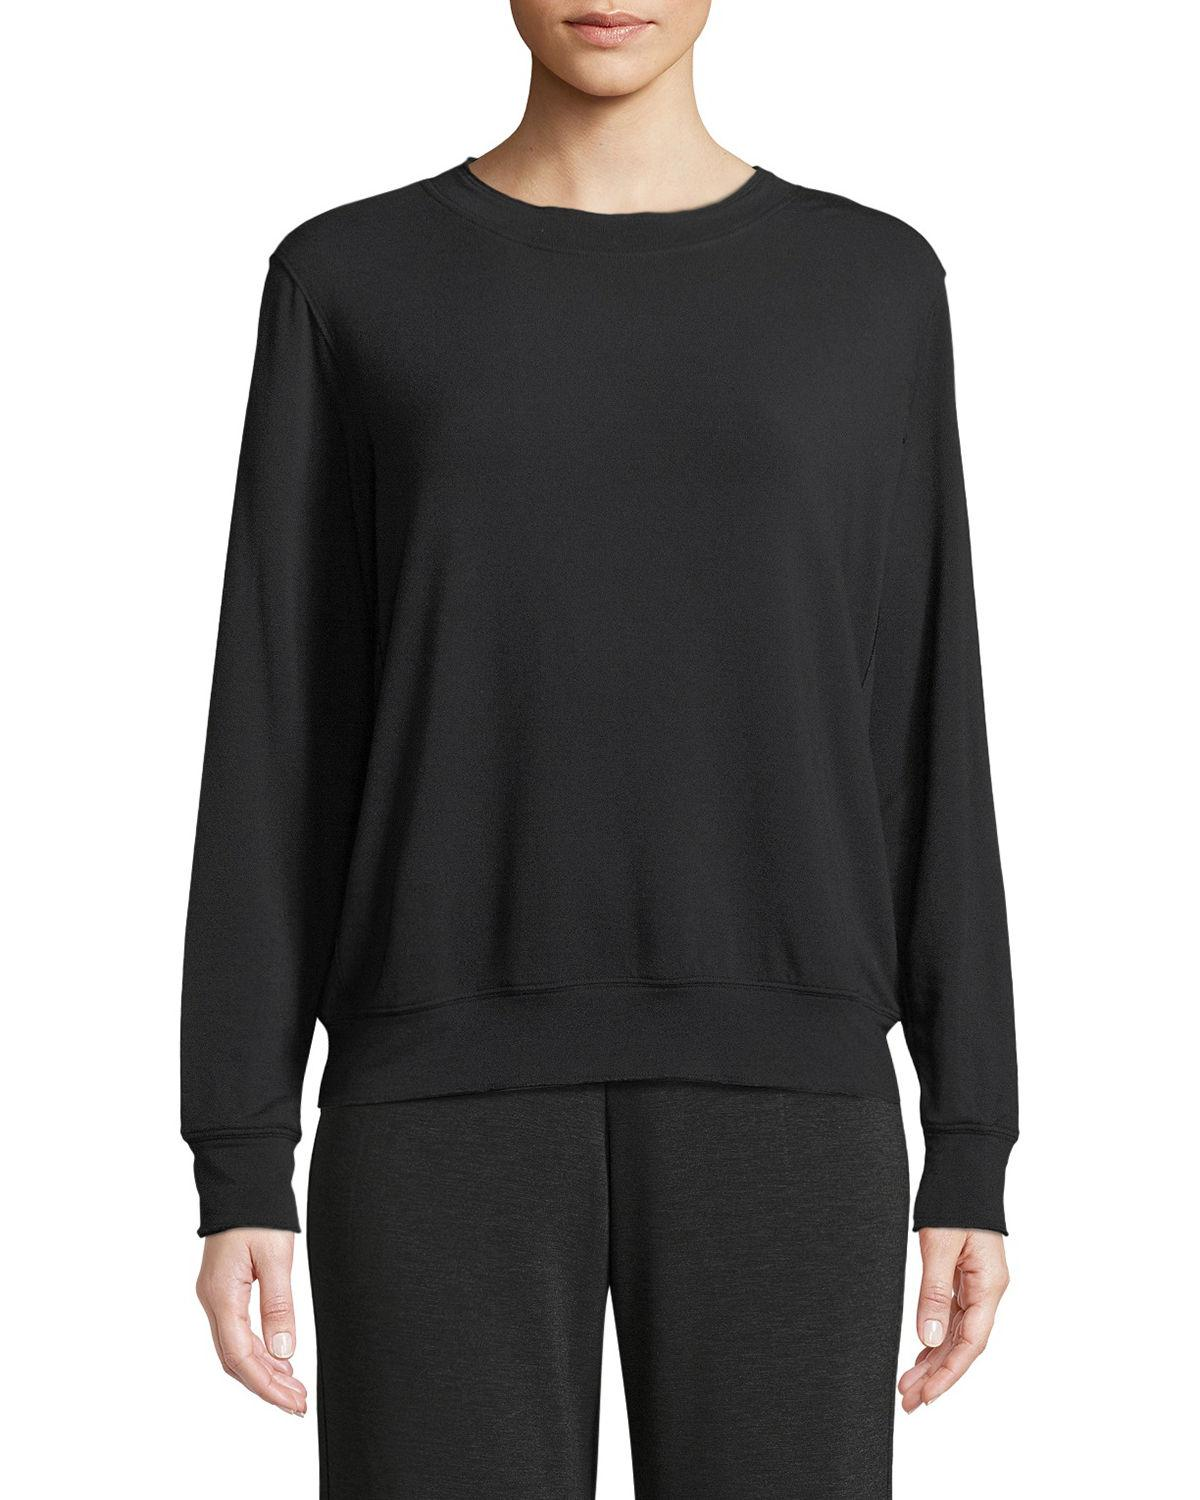 Majestic French Terry Relaxed Sweatshirt In Black